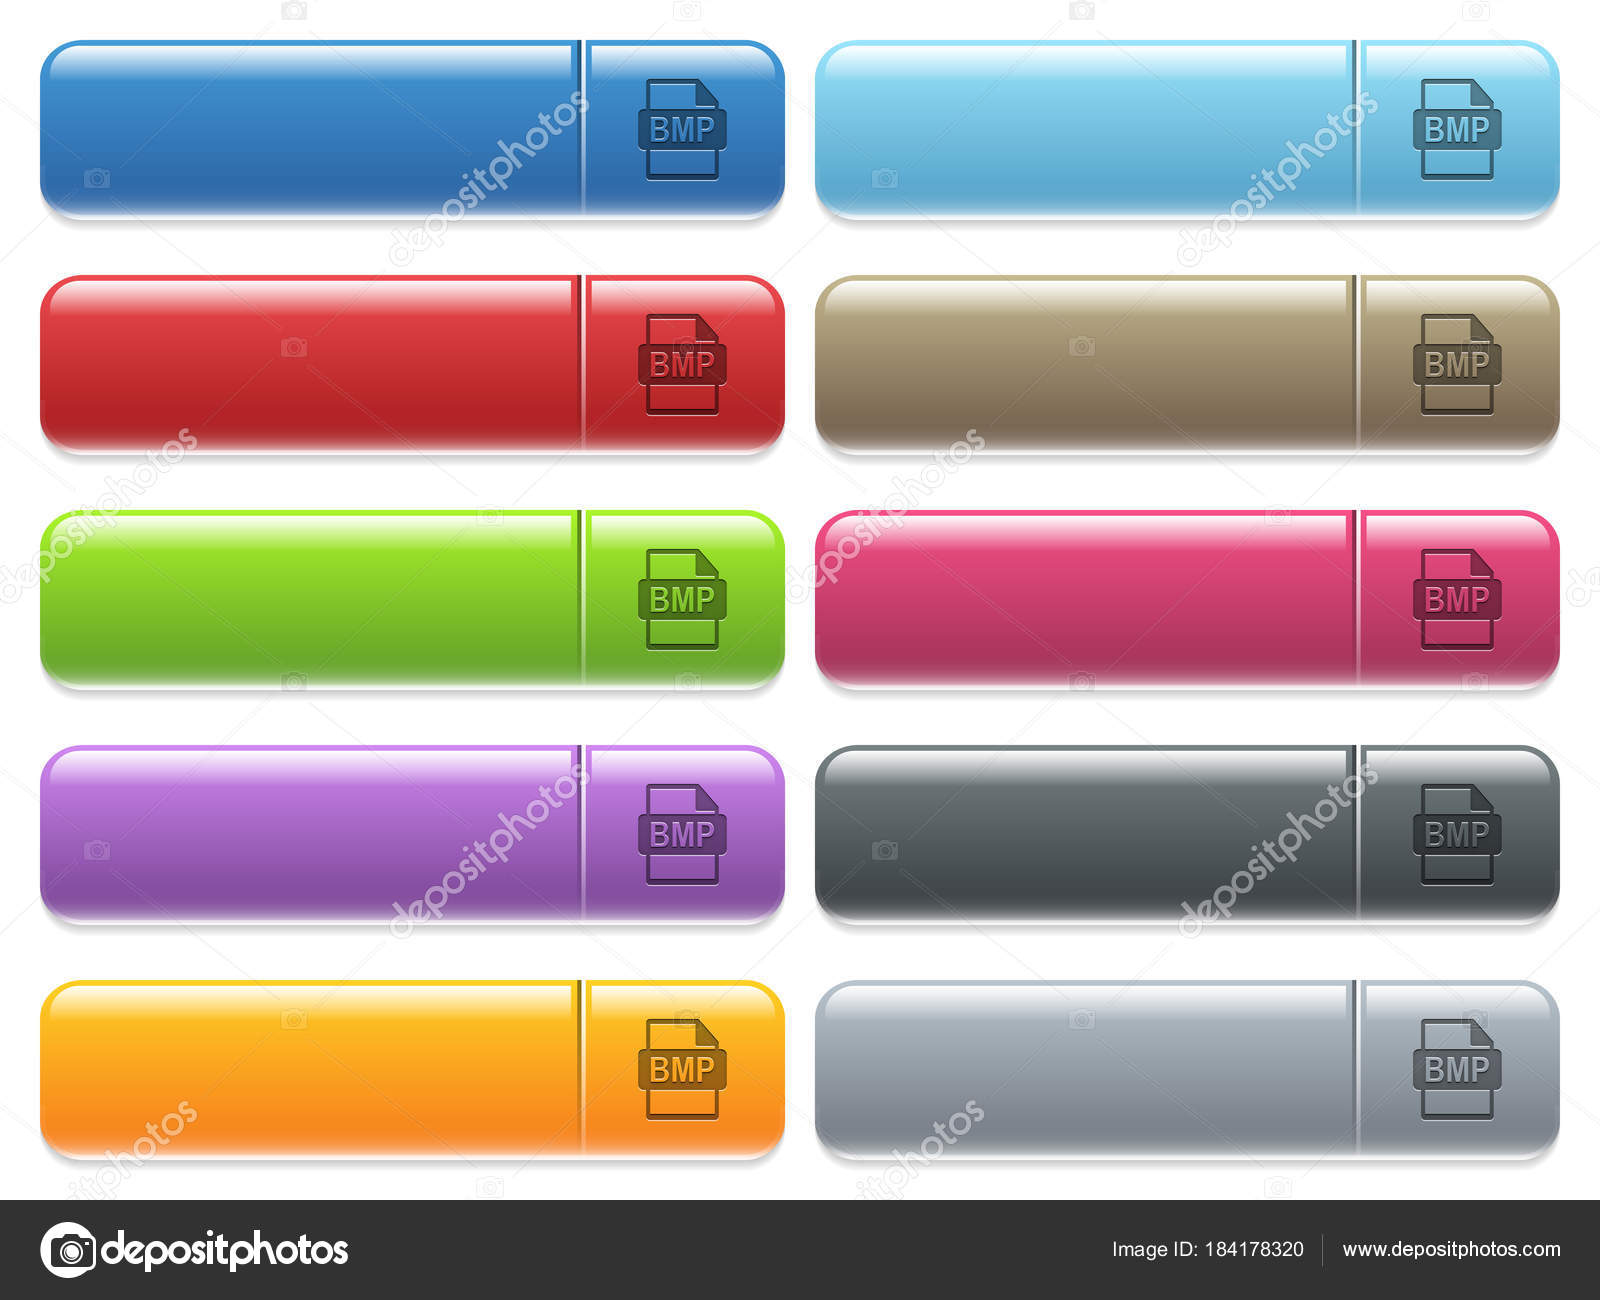 BMP file format icons on color glossy, rectangular menu